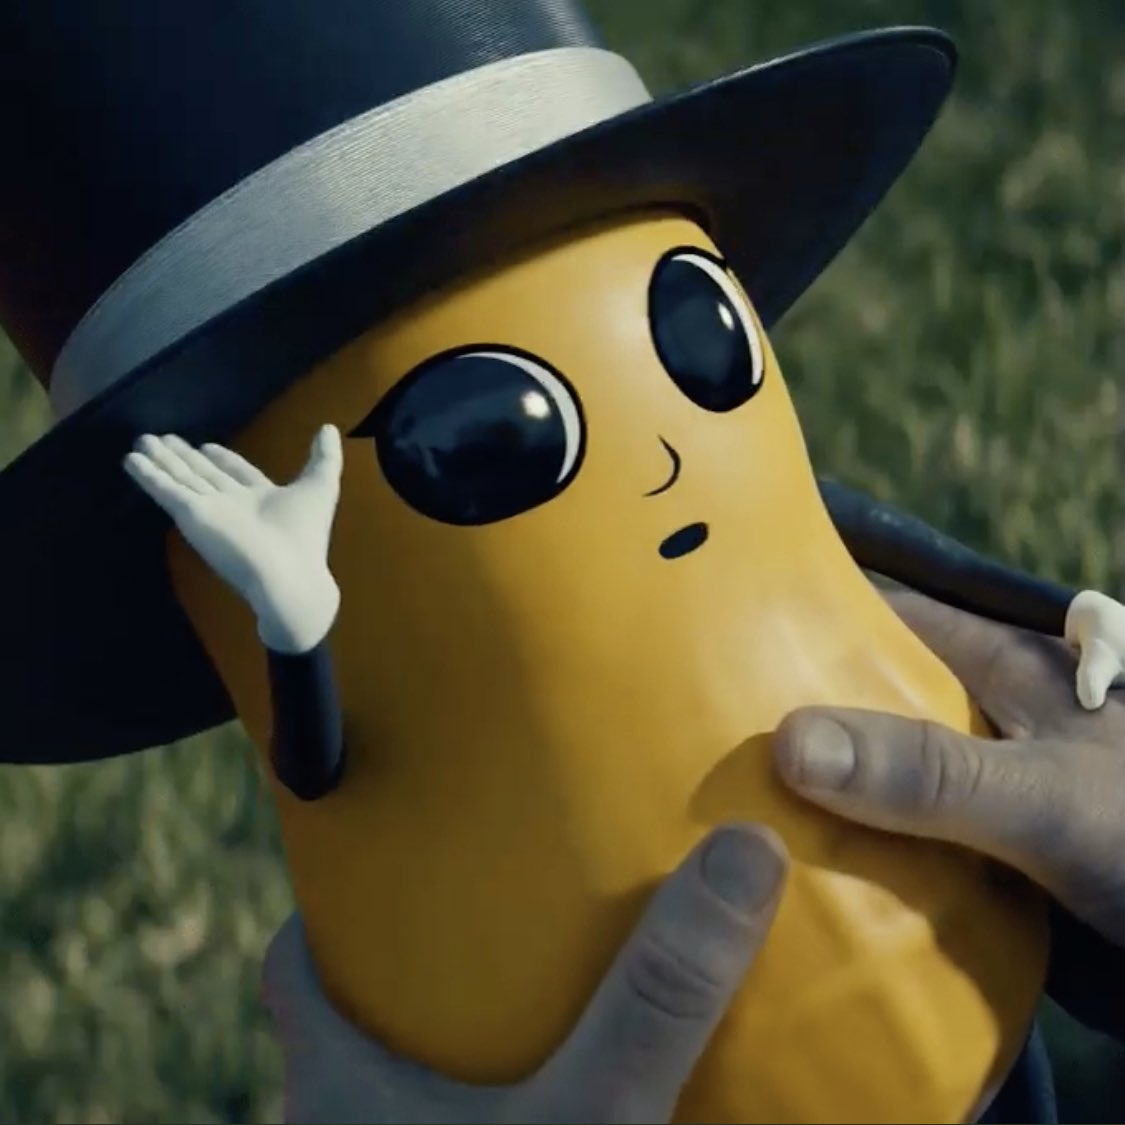 Mr. Peanut Resurrected As Baby Nut In New Super Bowl 2020 Commercial